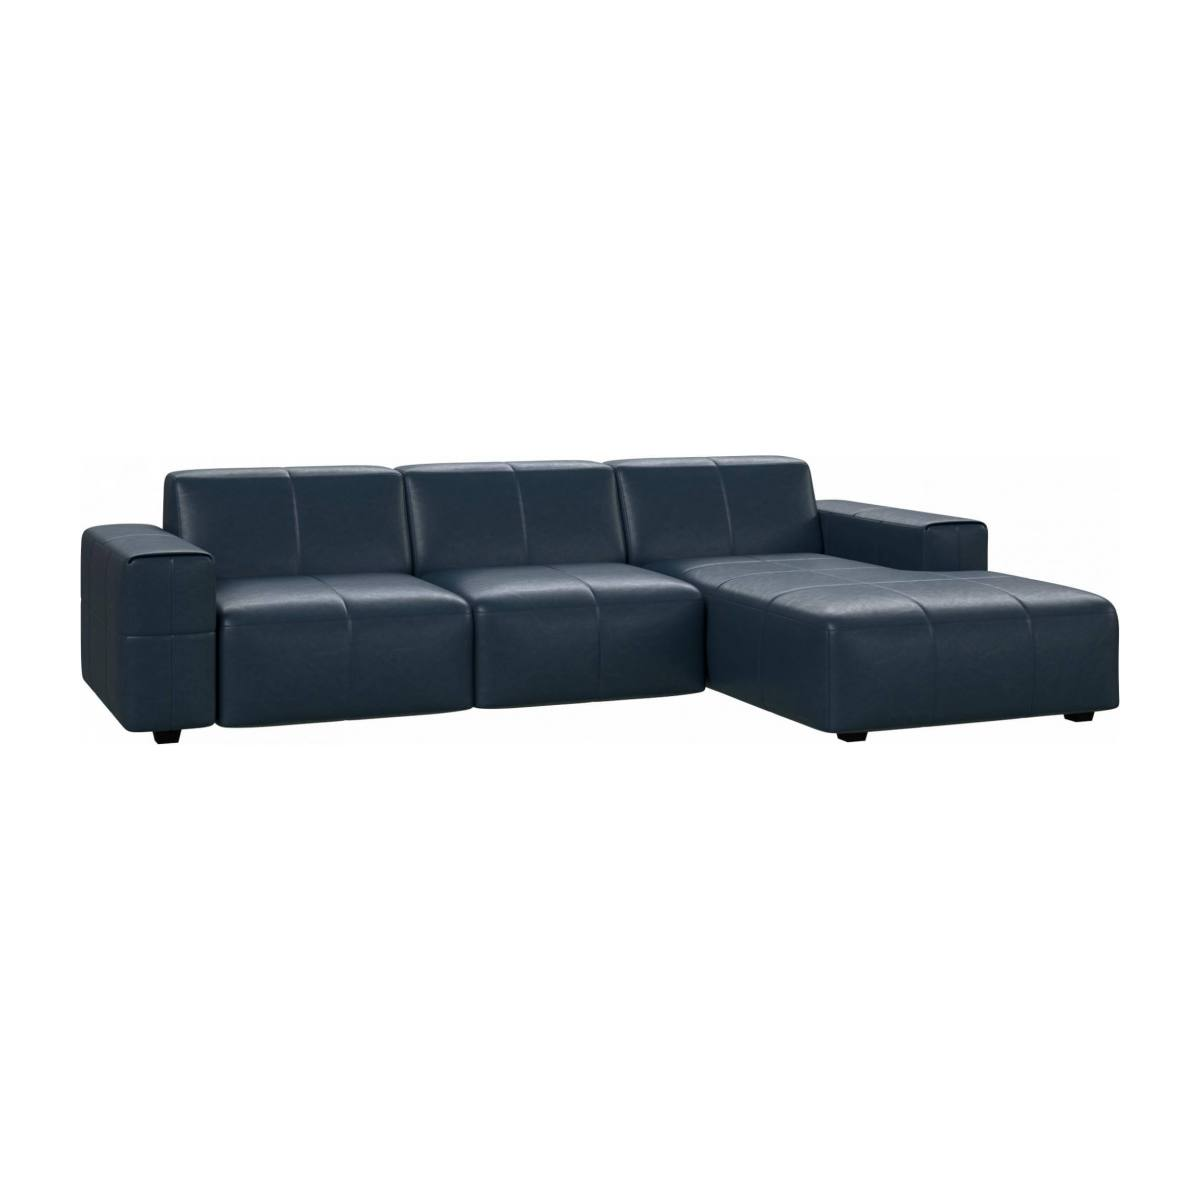 3 seater sofa with chaise longue on the right in Vintage aniline leather, denim blue n°2